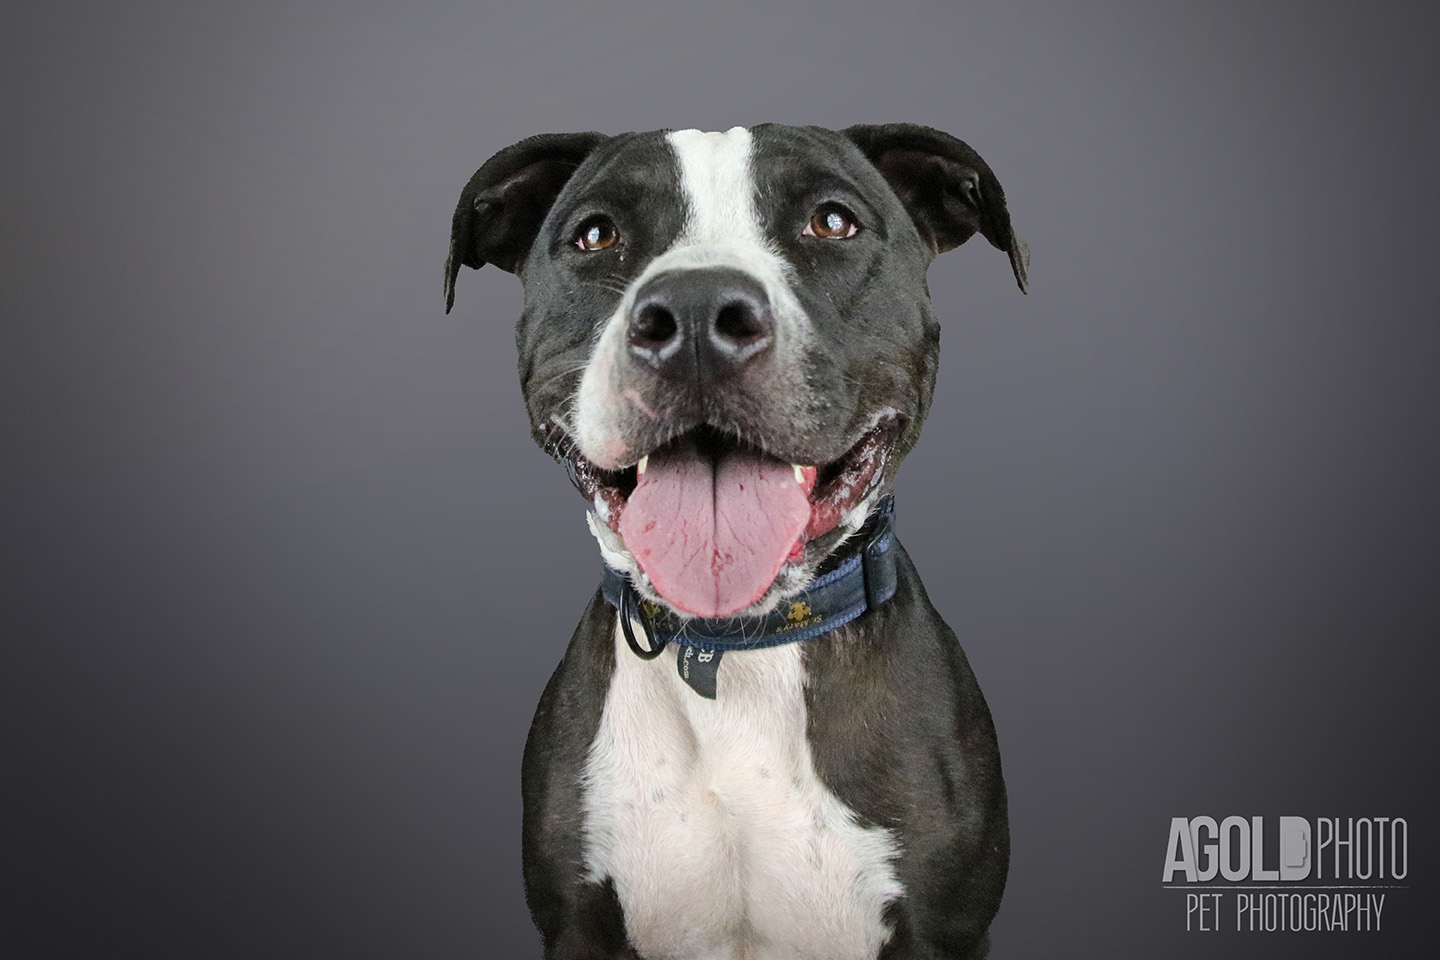 valentino_agoldphoto-tampa-pet-photography__agoldphoto-tampa-pet-photography_